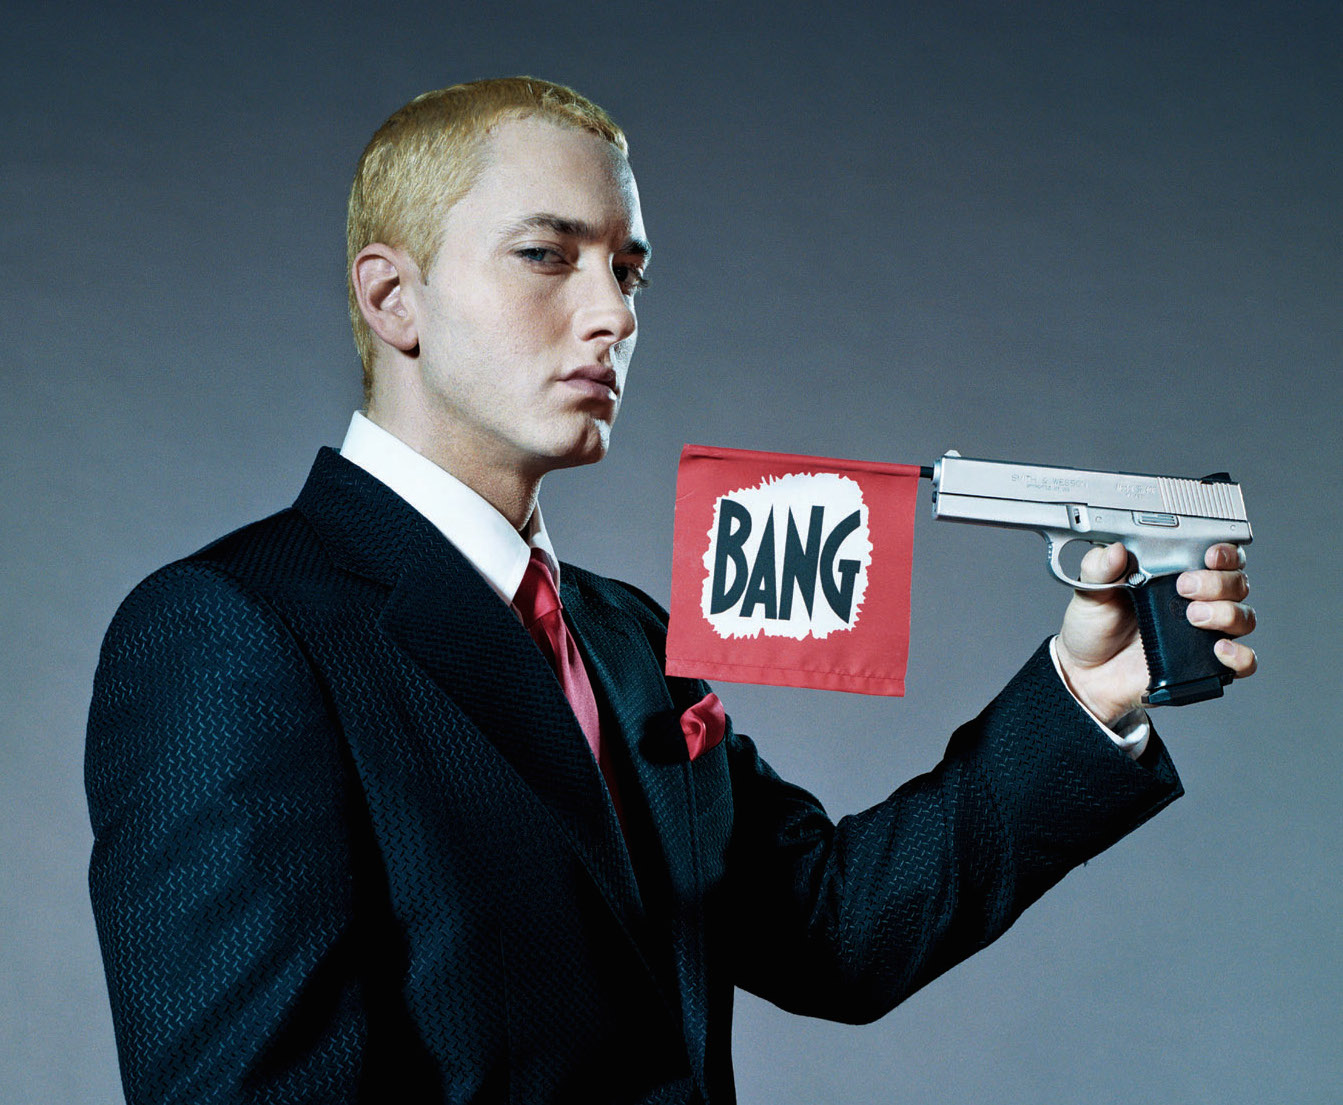 Are These Photos Proof That Eminem Has Been Dead For 13